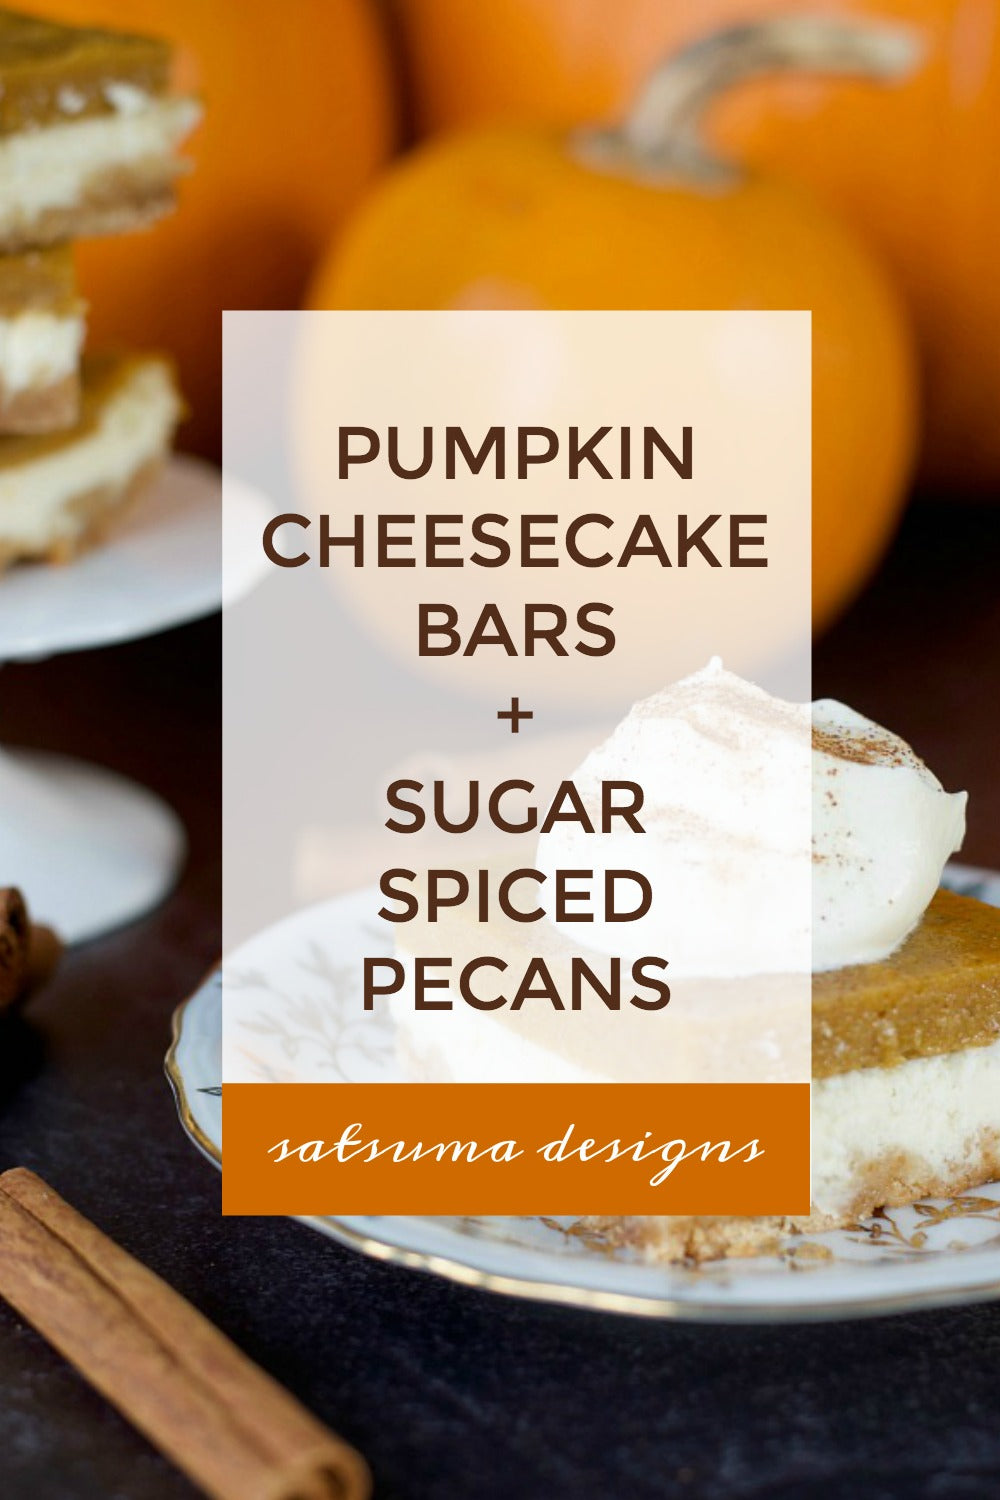 Classic Holiday Treats | Pumpkin Cheesecake Bars + Sugar Spiced Pecans